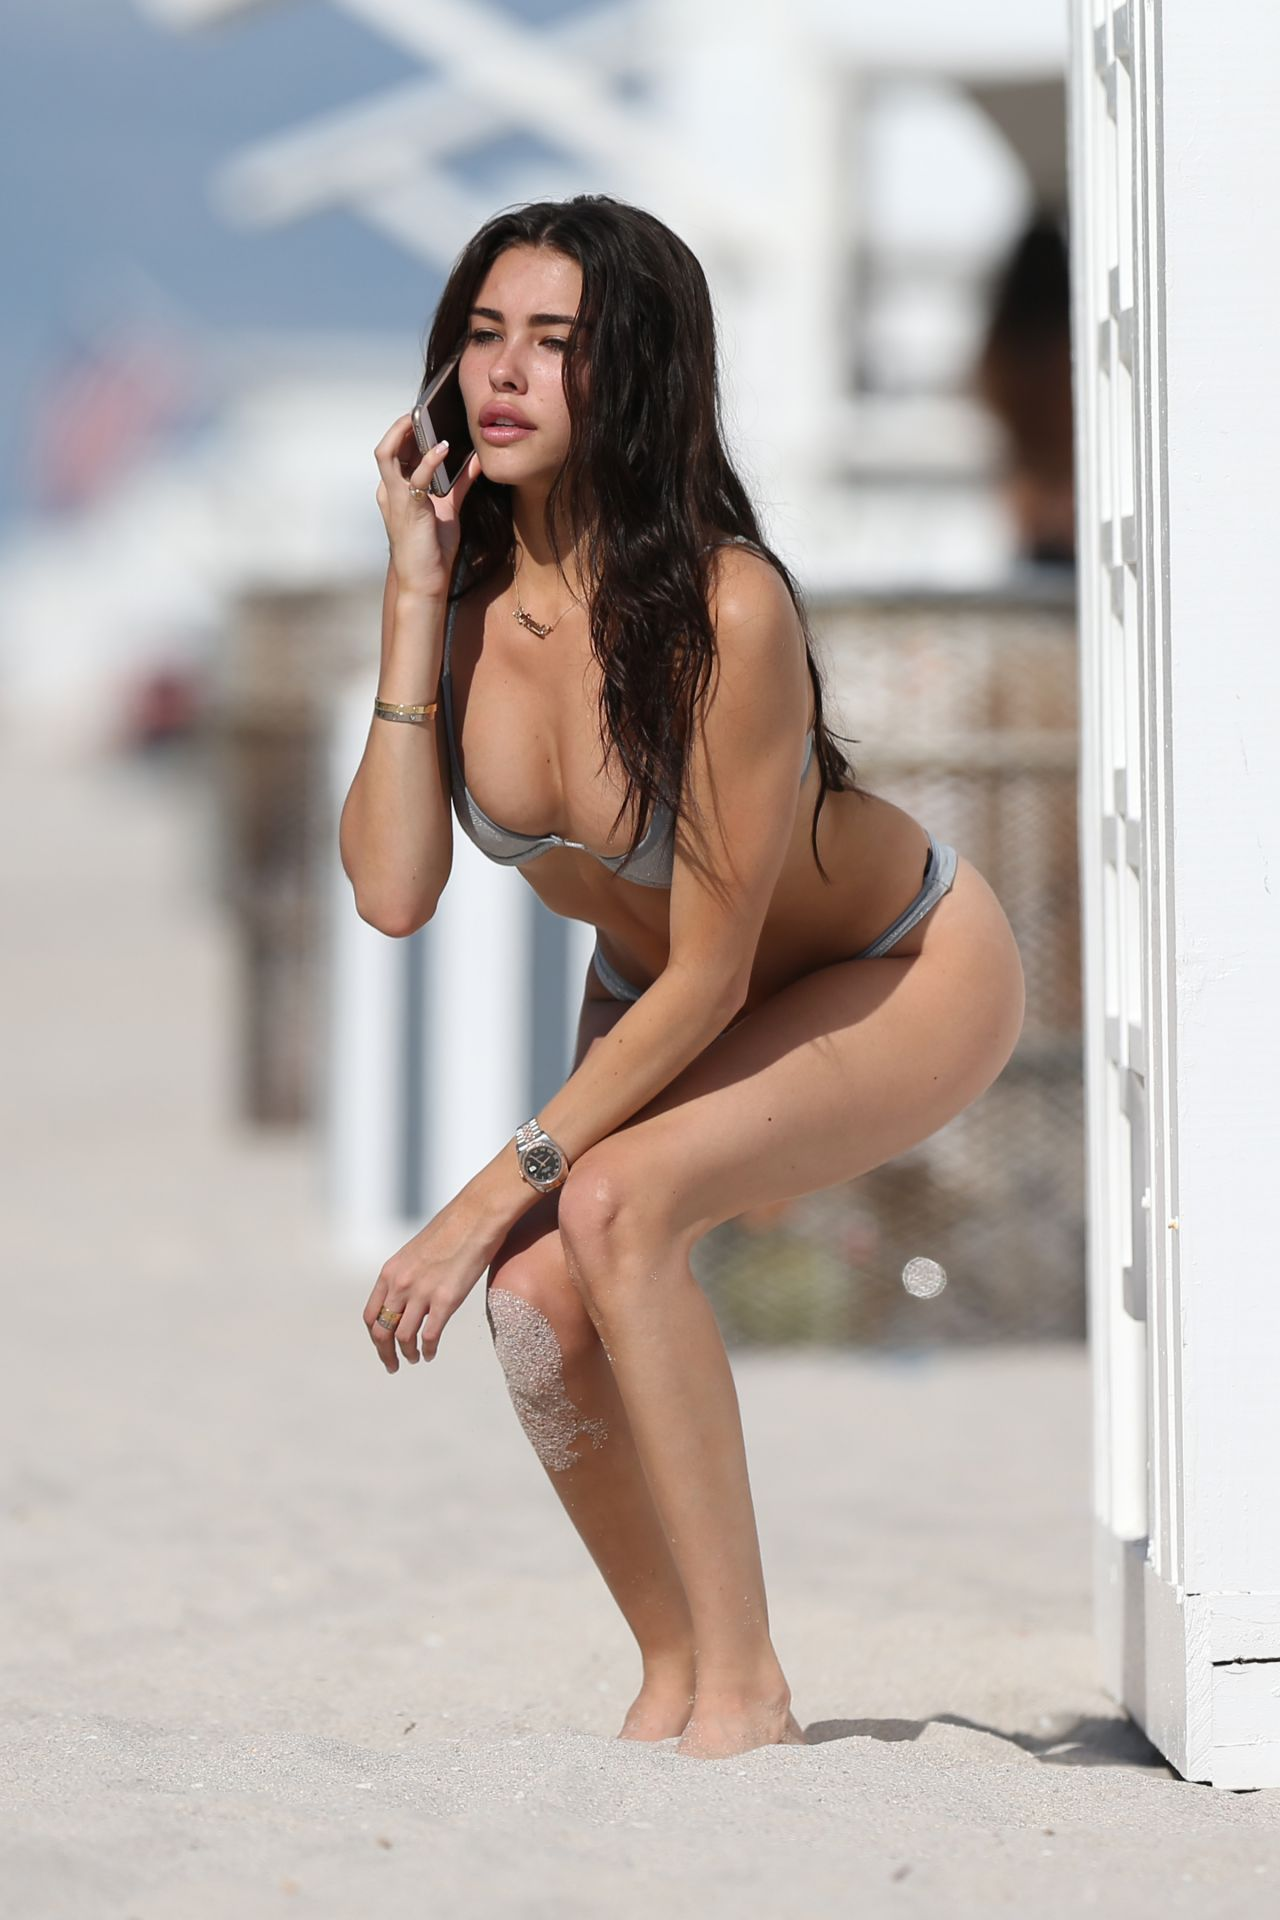 Madison Beer In A Silver Bikini Thanksgiving Holiday In Miami 11 22 2018 In 2020 Madison Beer Celebrity Pictures Madison